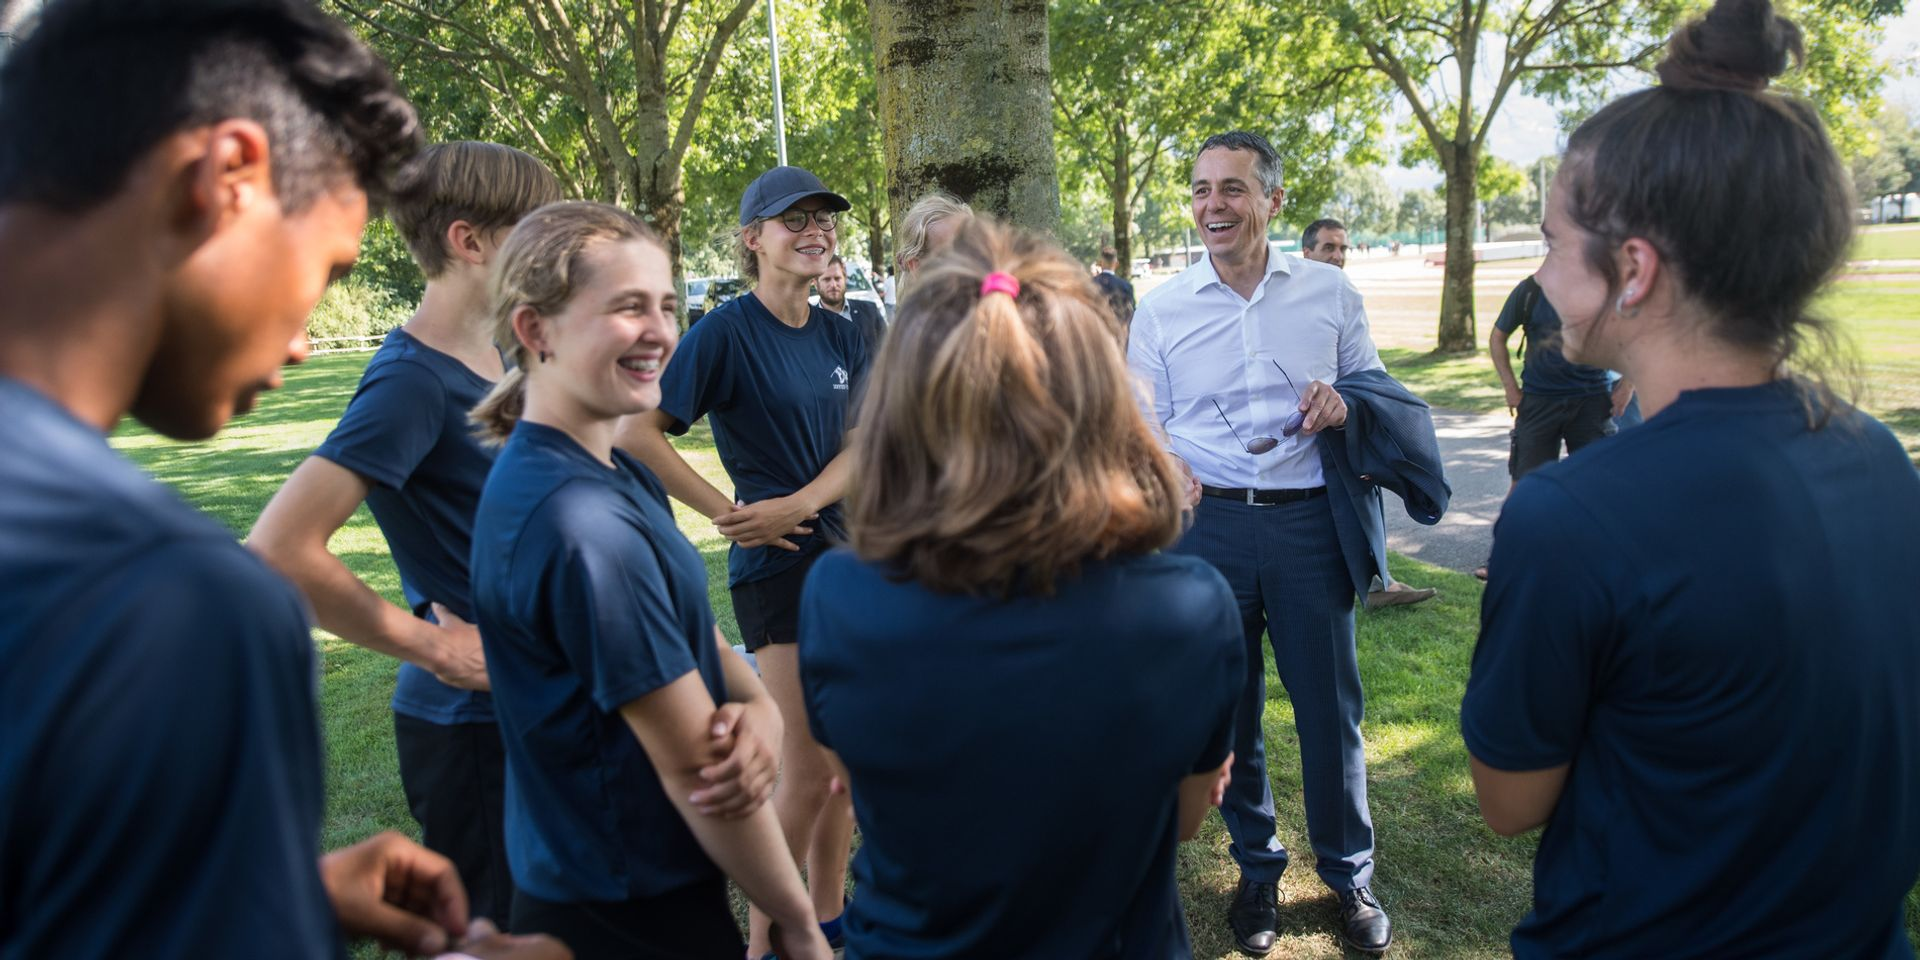 Federal Councillor Ignazio Cassis in conversation with track and field athletes during training.